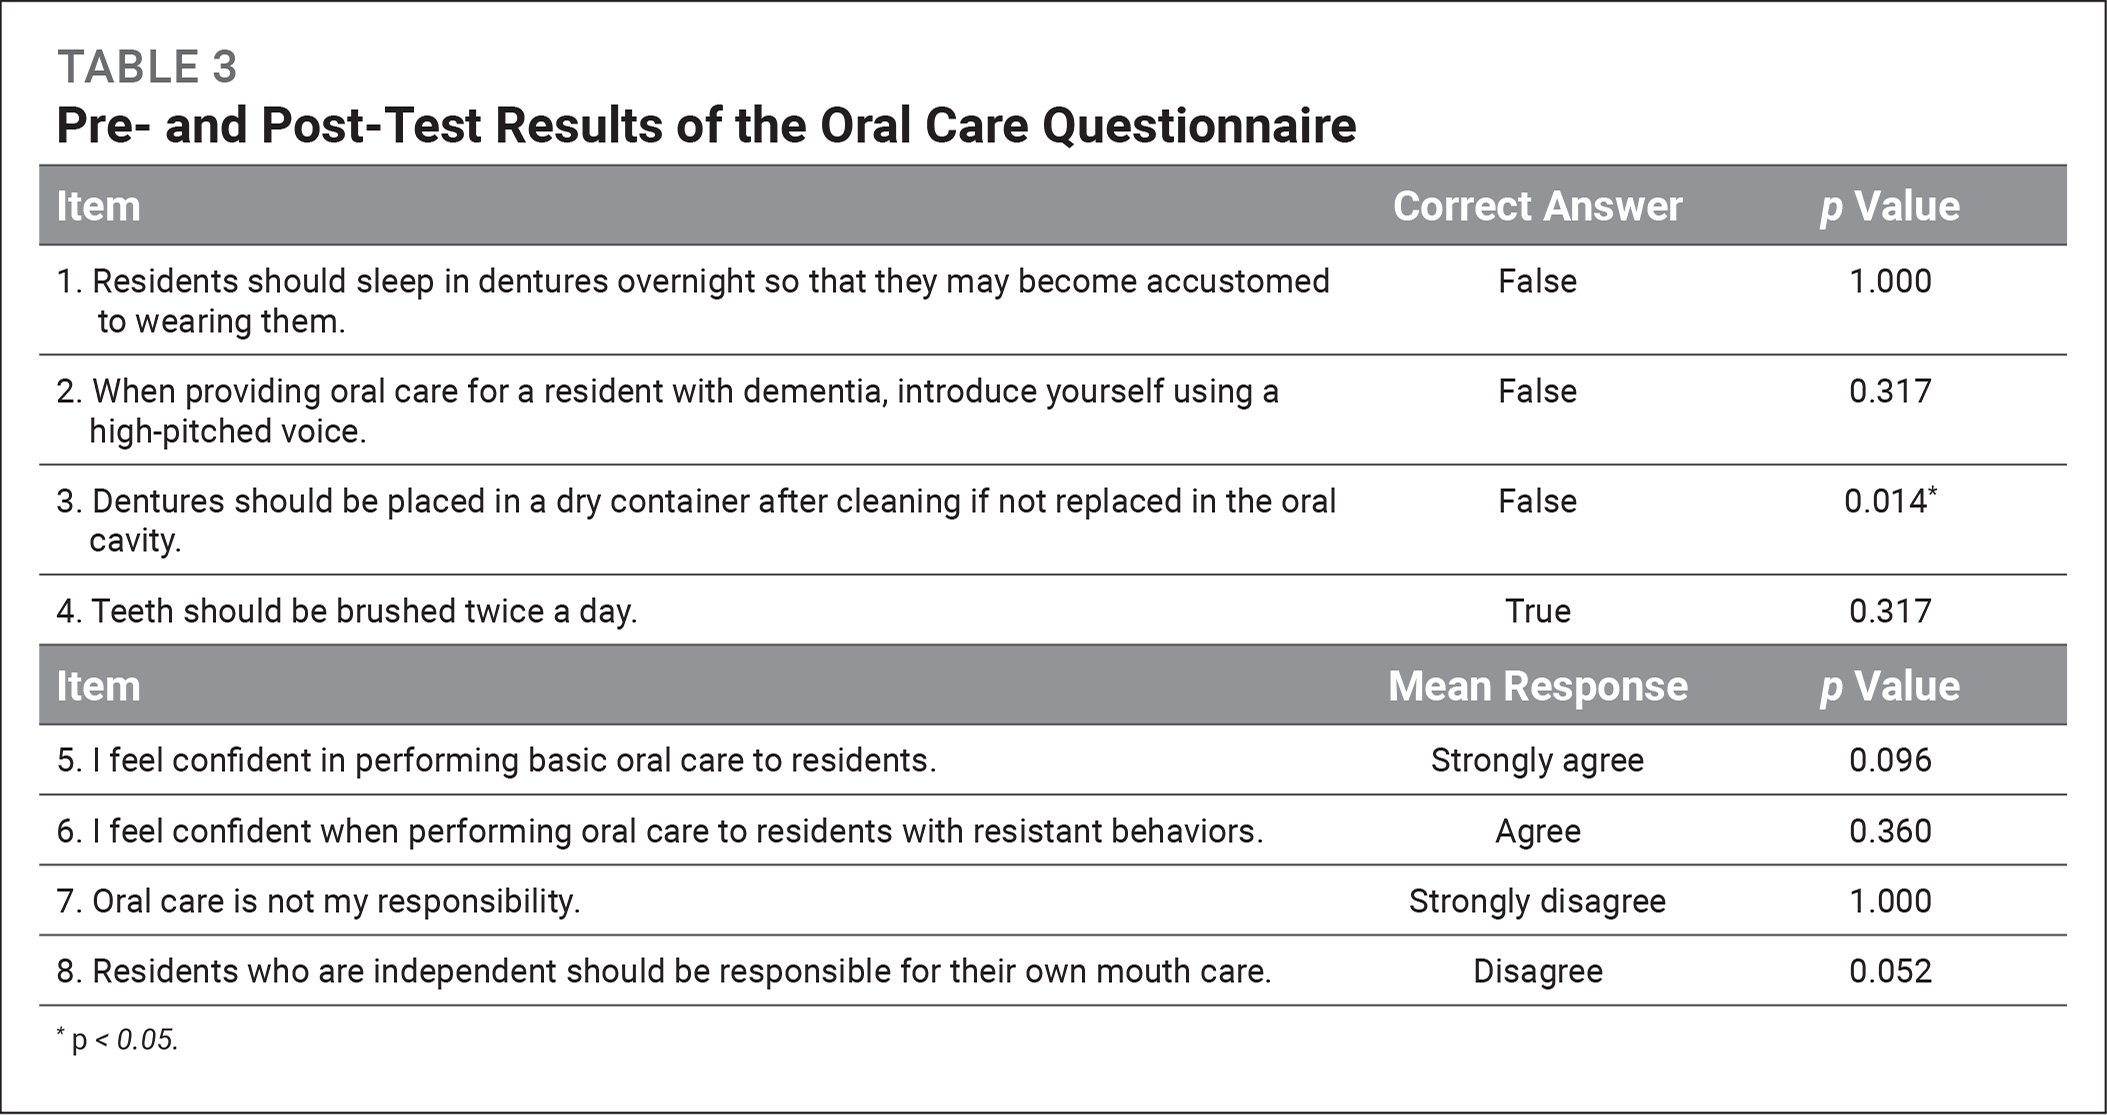 Pre- and Post-Test Results of the Oral Care Questionnaire